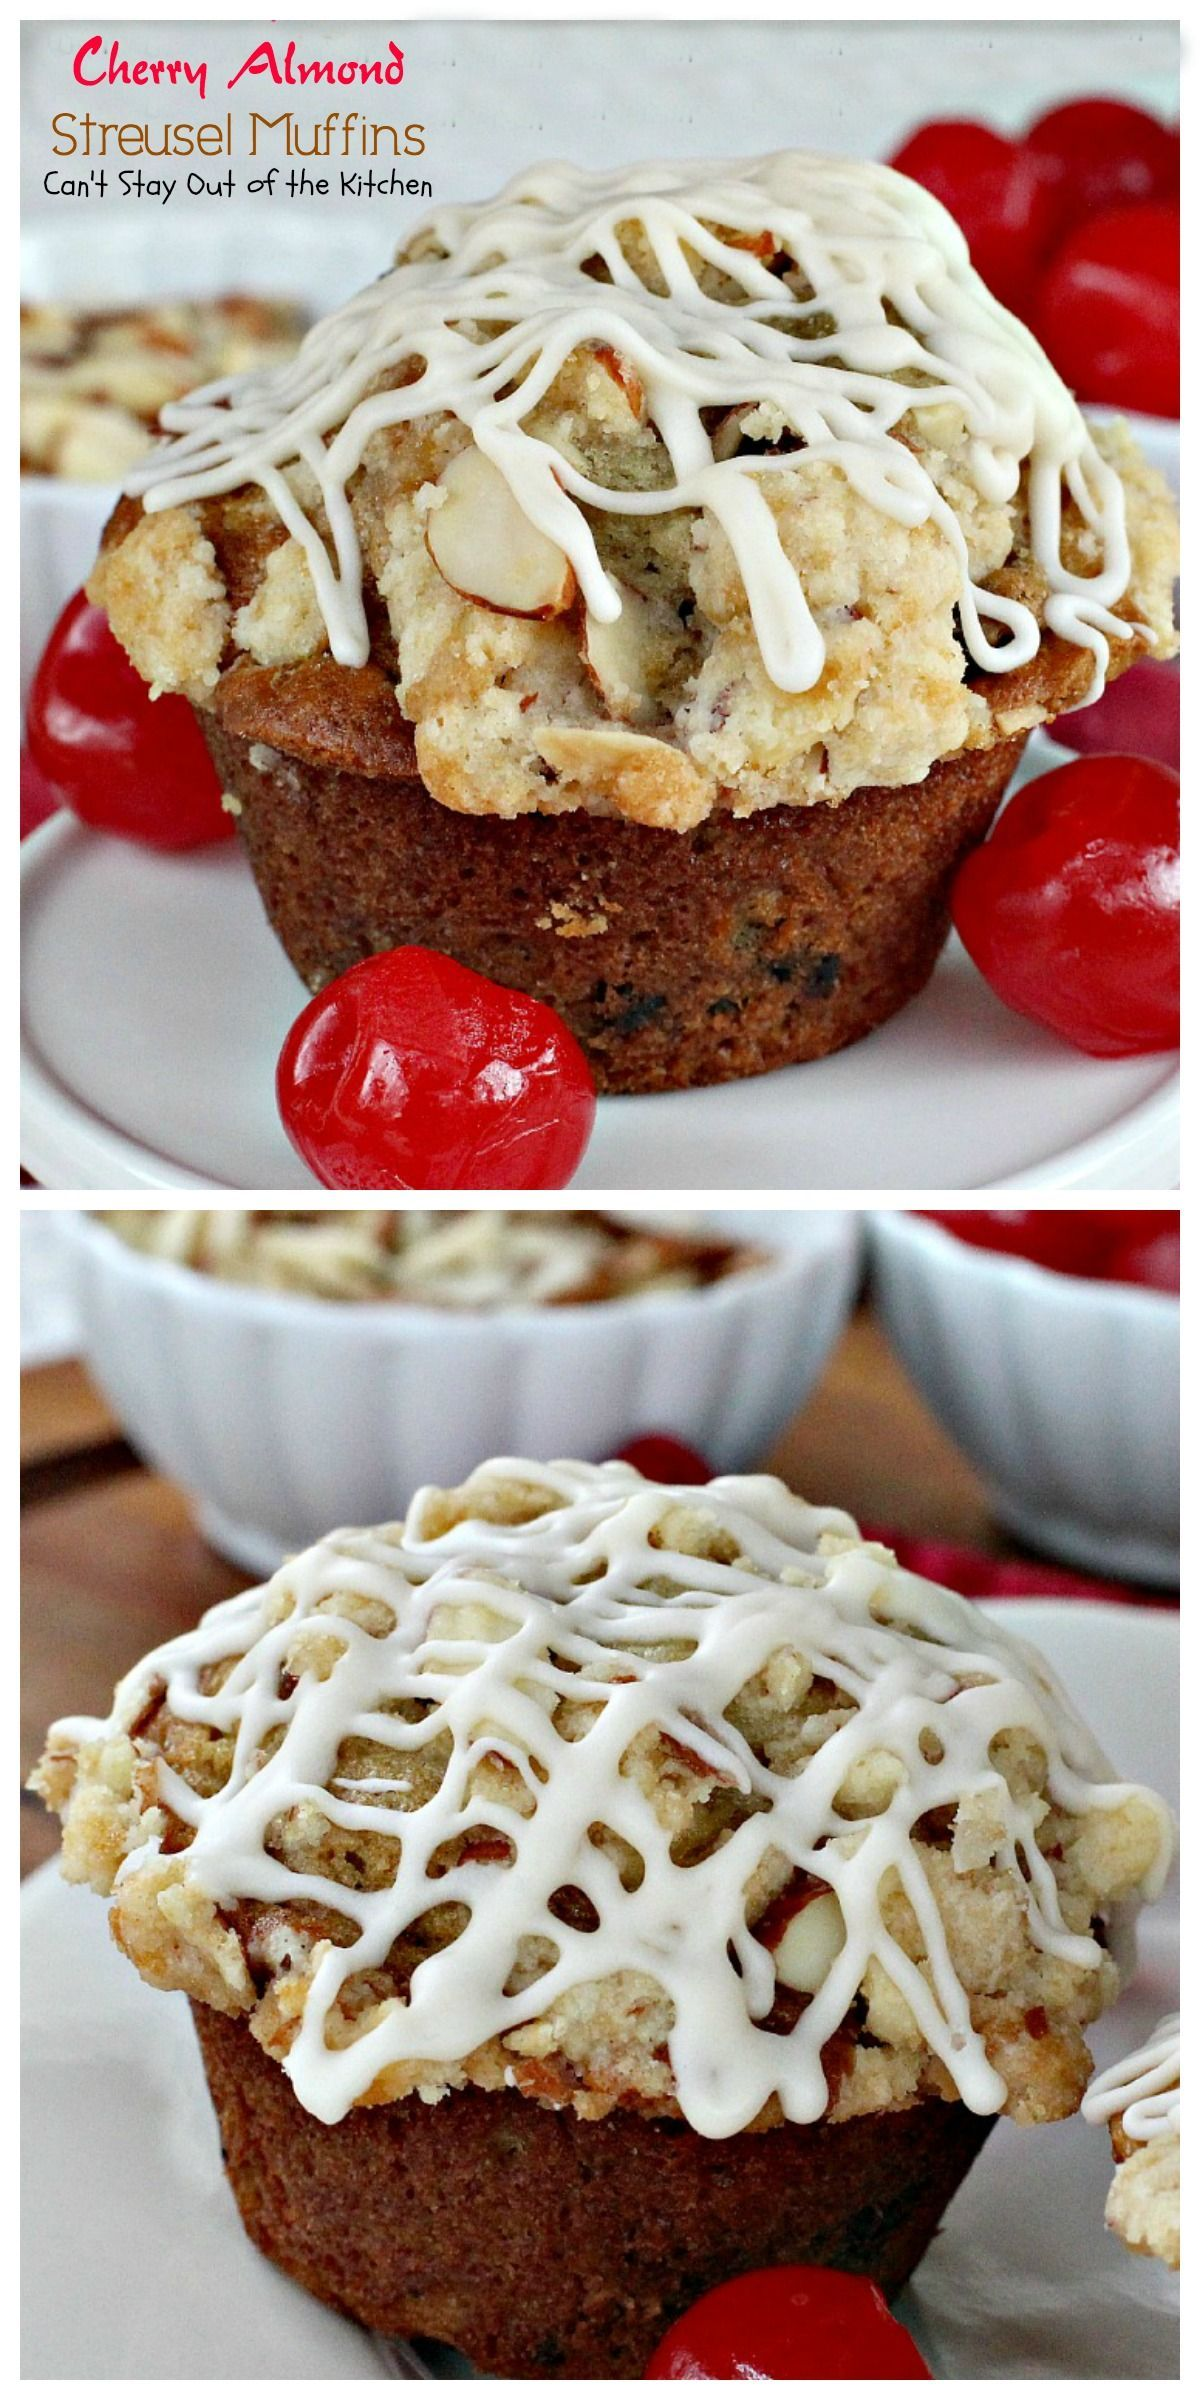 Almond Streusel Muffins Cherry Almond Streusel Muffins | Can't Stay Out of the Kitchen | rich and decadent, these are sweet enough forCherry Almond Streusel Muffins | Can't Stay Out of the Kitchen | rich and decadent, these are sweet enough for